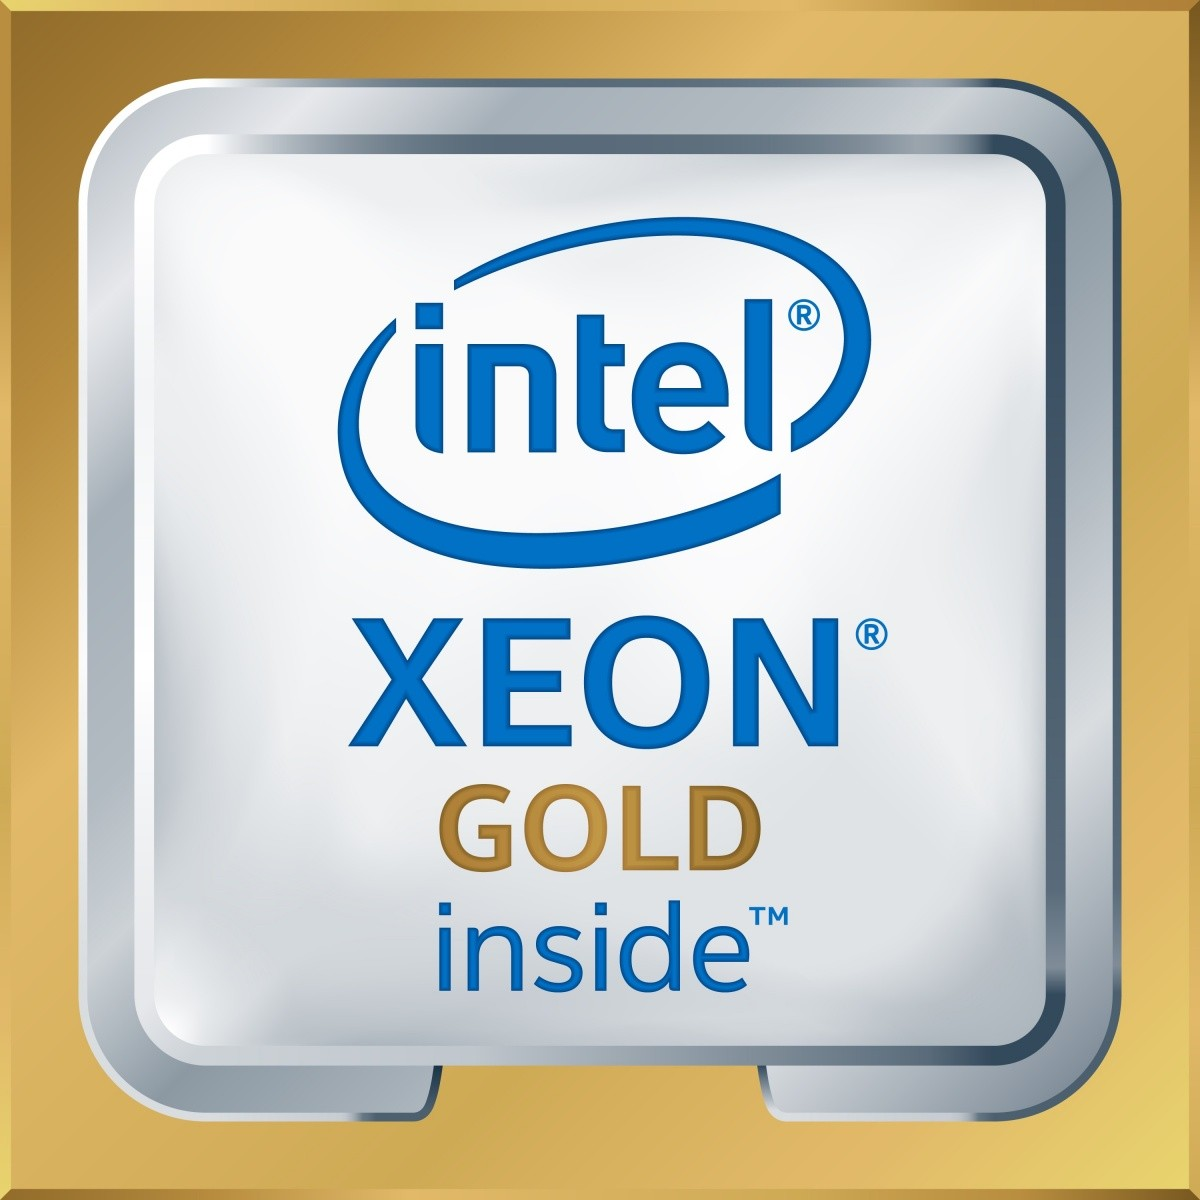 xeon-gold-6140-18c-2-3-ghz-24-75-mb-cache-ddr4-up-to-2666-mhz-140w-tdp